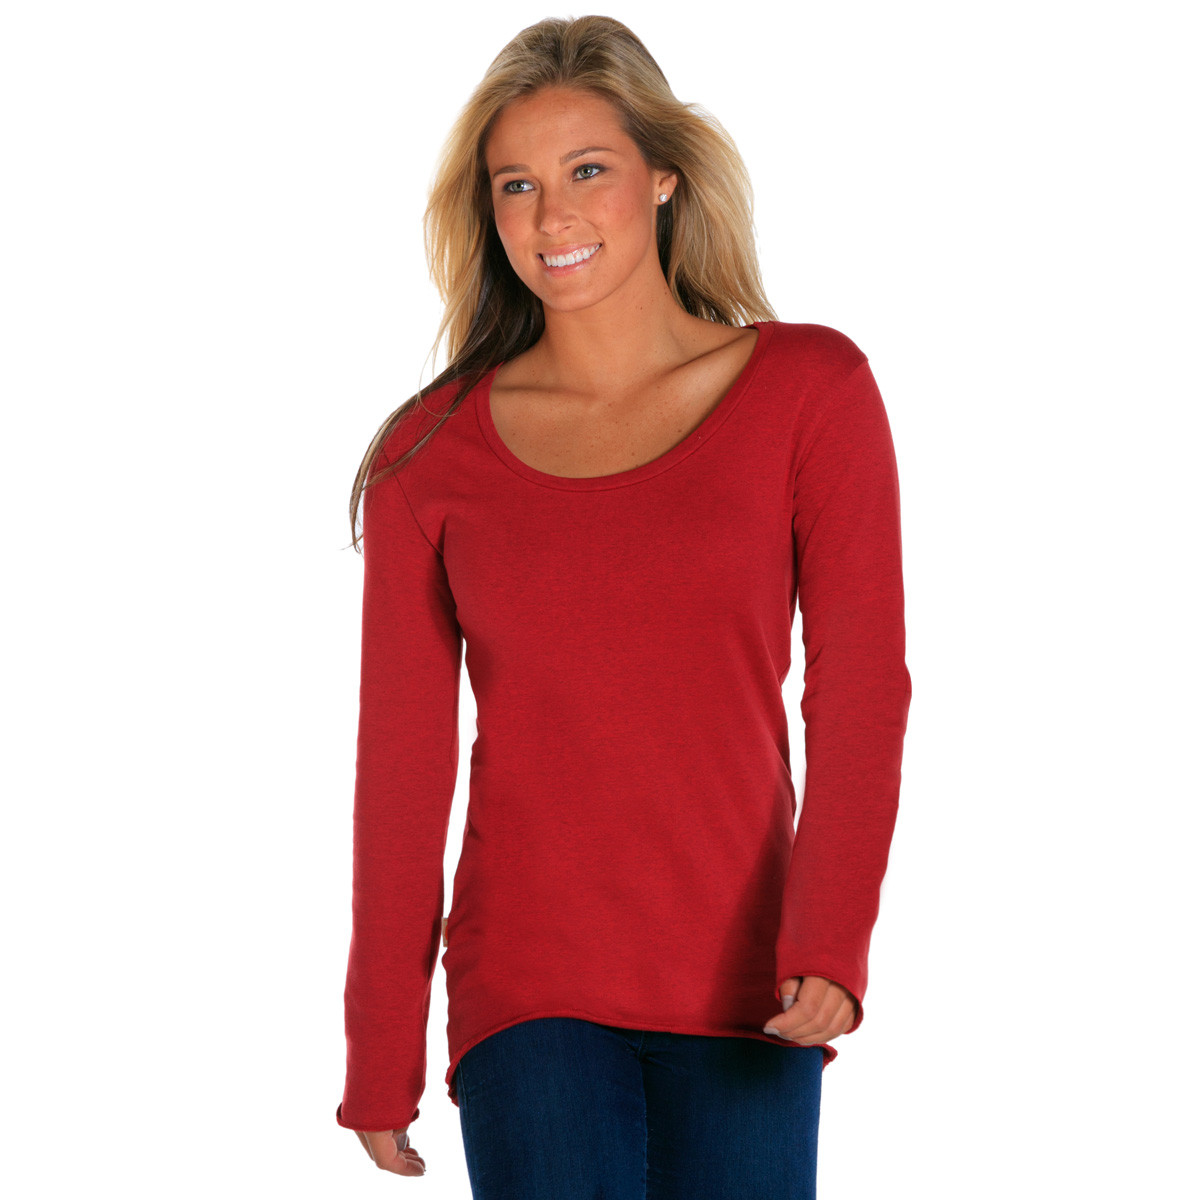 TNB-Womens-Heather-Red-Scoop-front